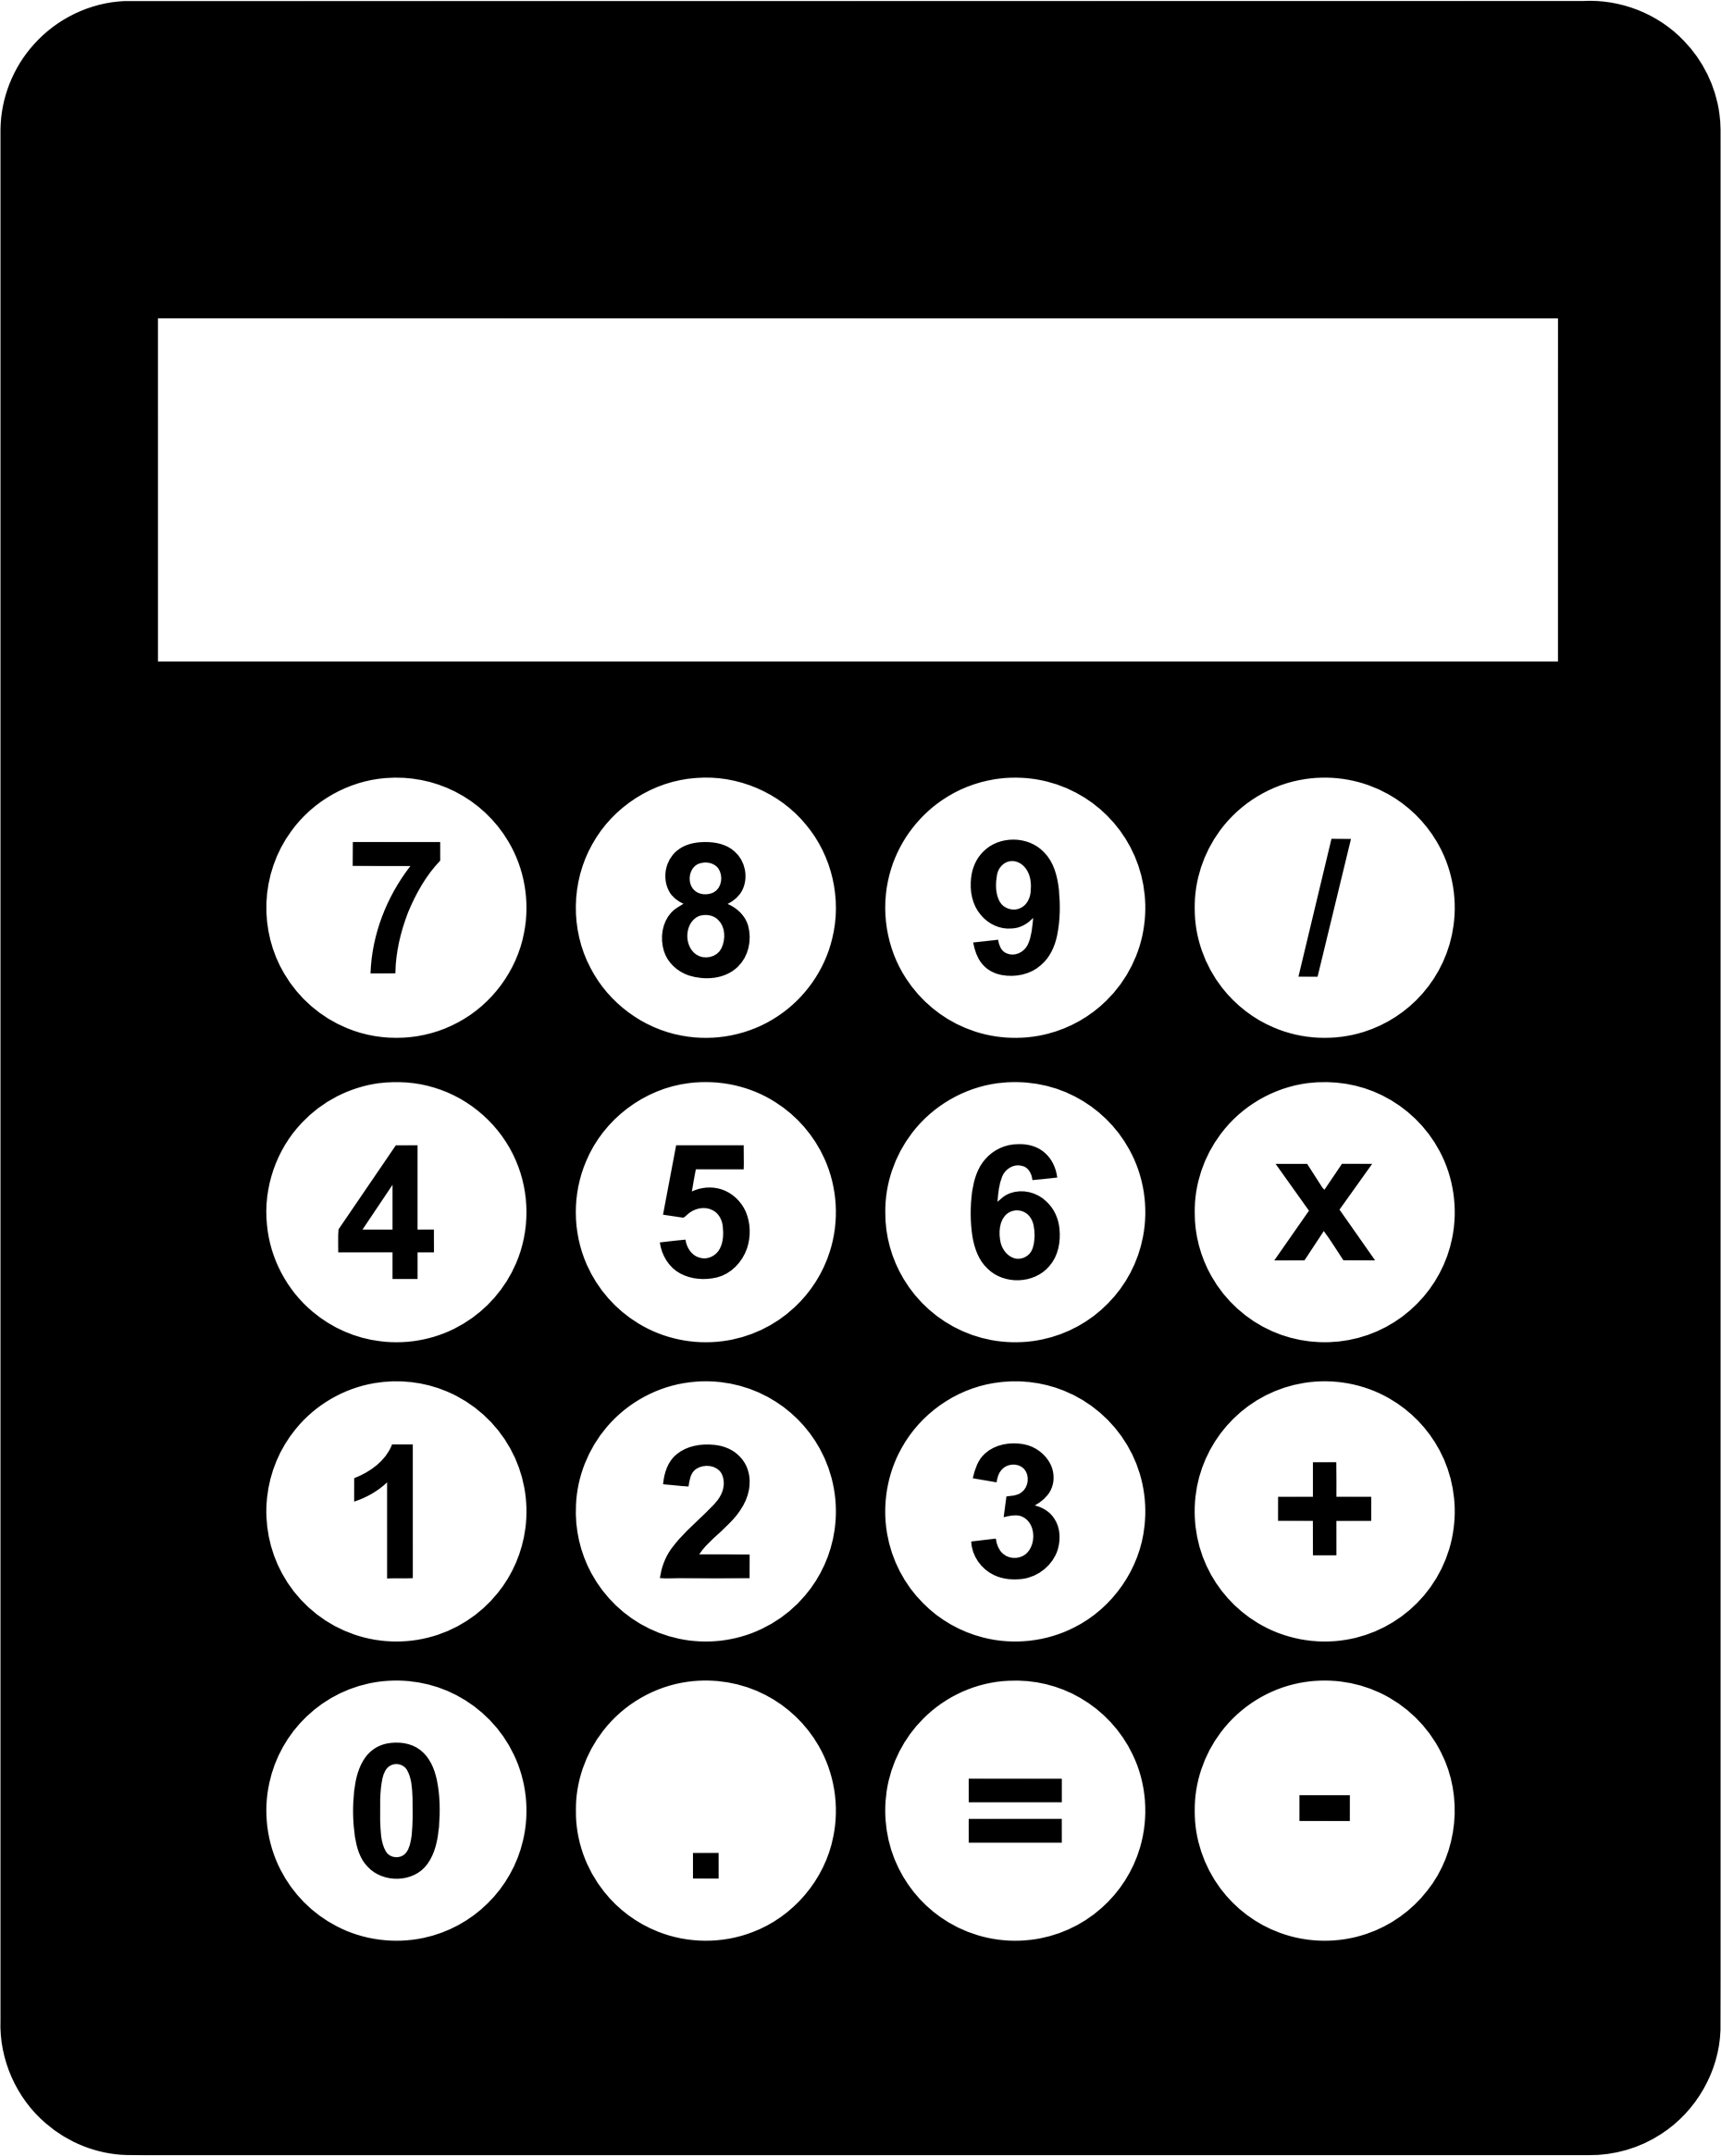 Clip Art Calculator Clip Art clipart black and white calculator big image png